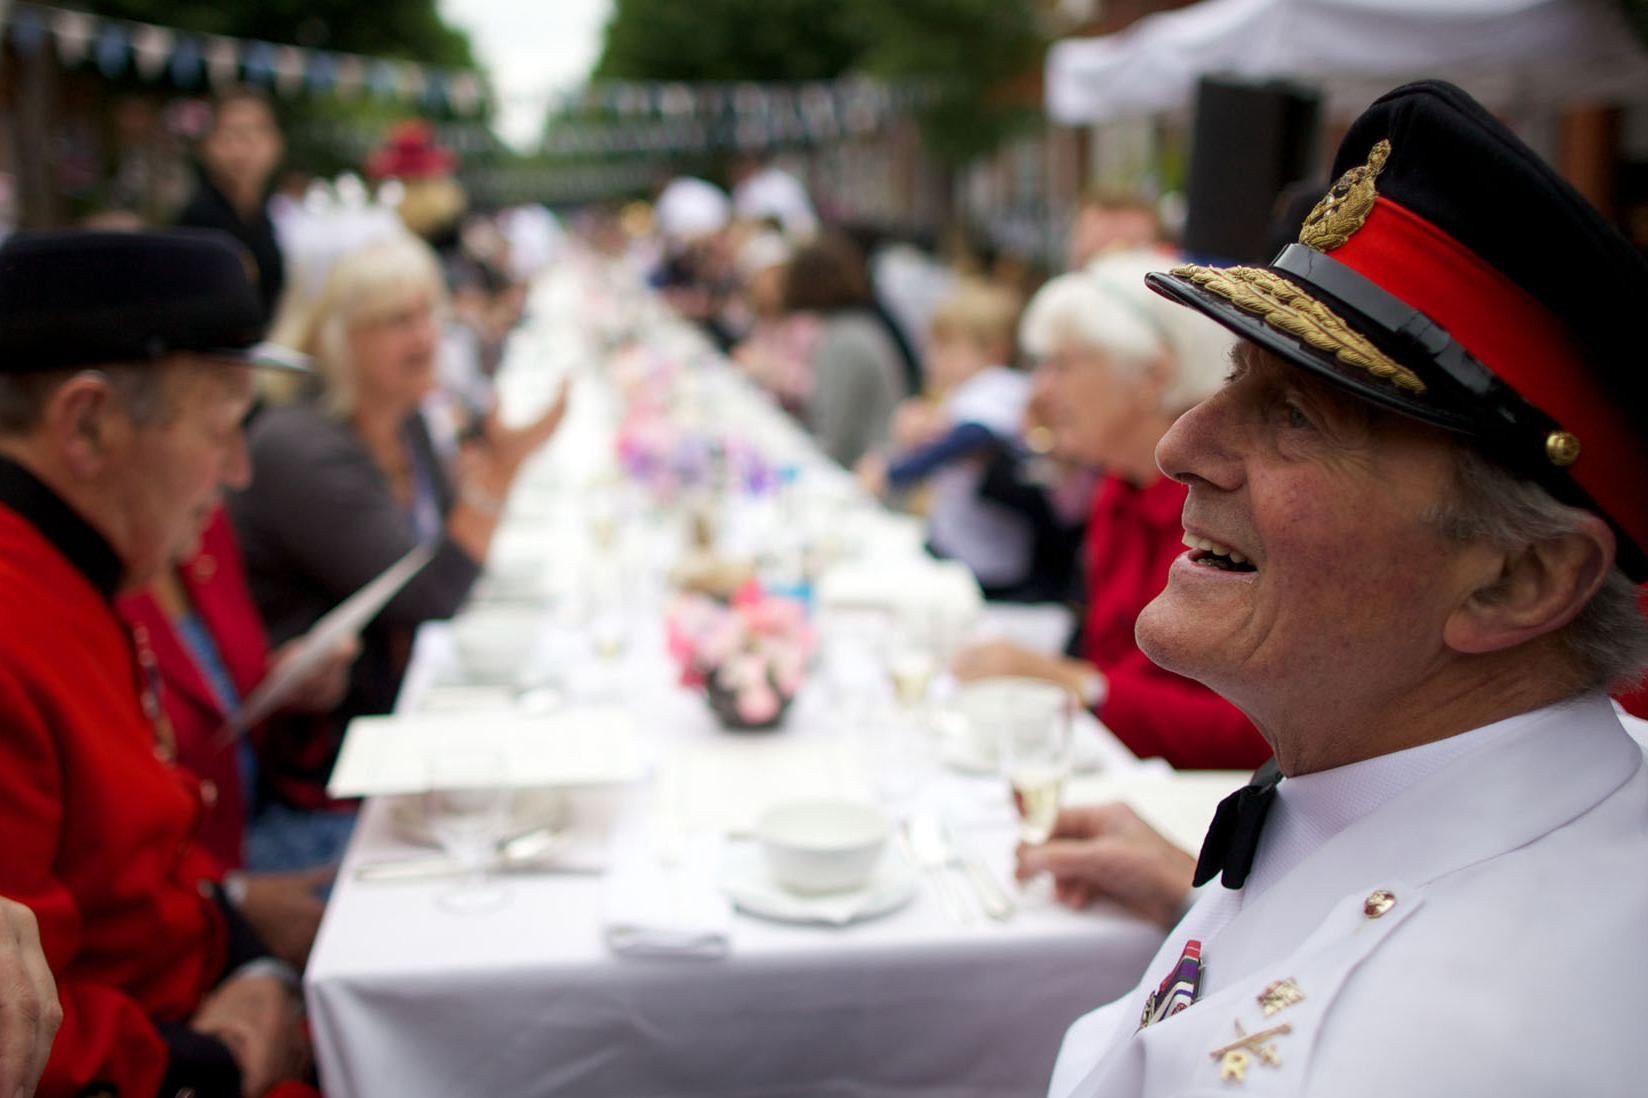 Residents of Battersea in south London organized a street party on Saturday.